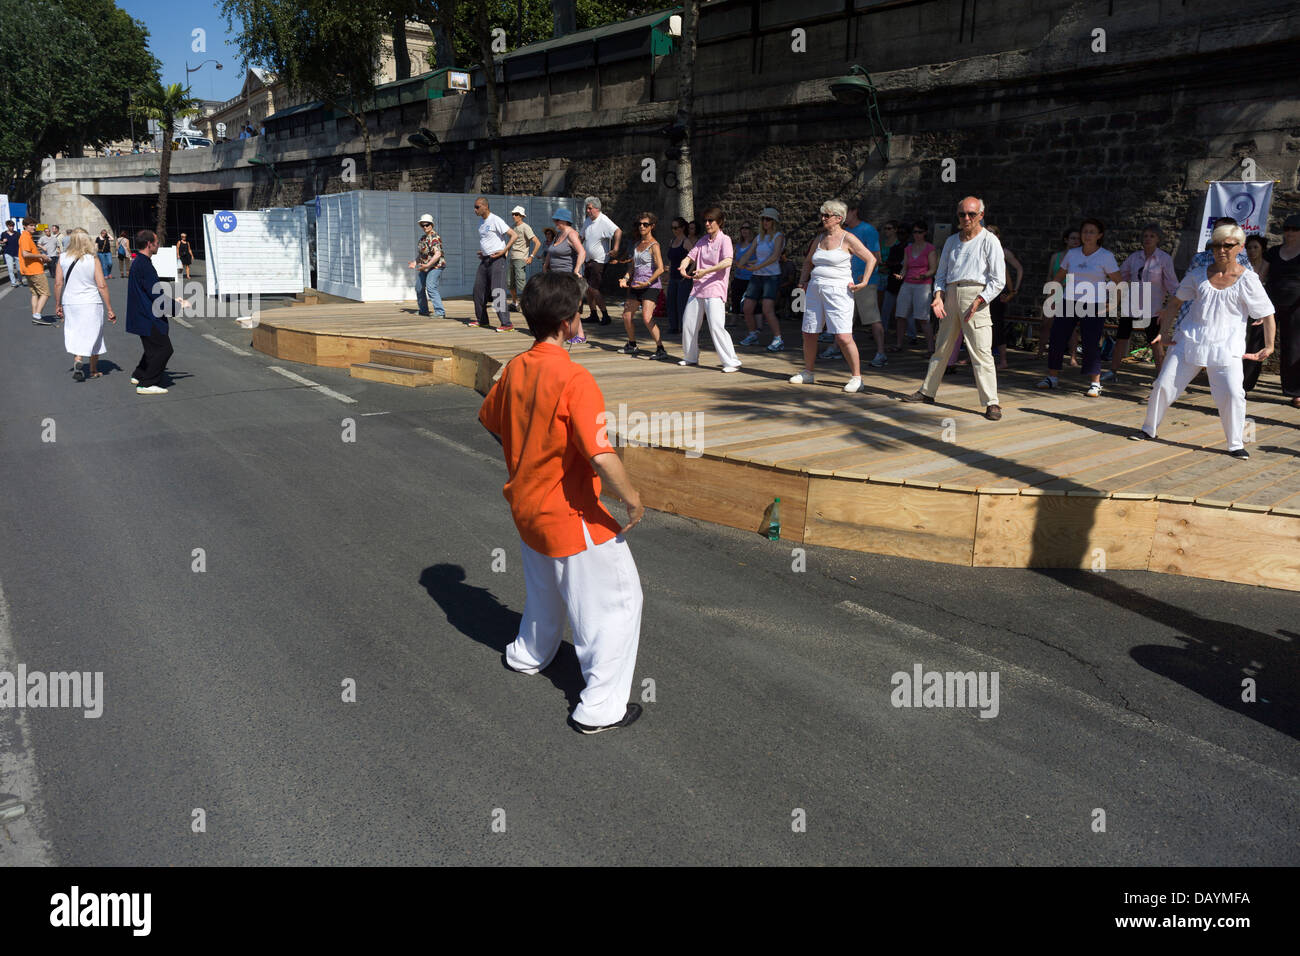 A group Tai chi session at Paris Plages on opening day, 20th July 2013, Paris, France - Stock Image